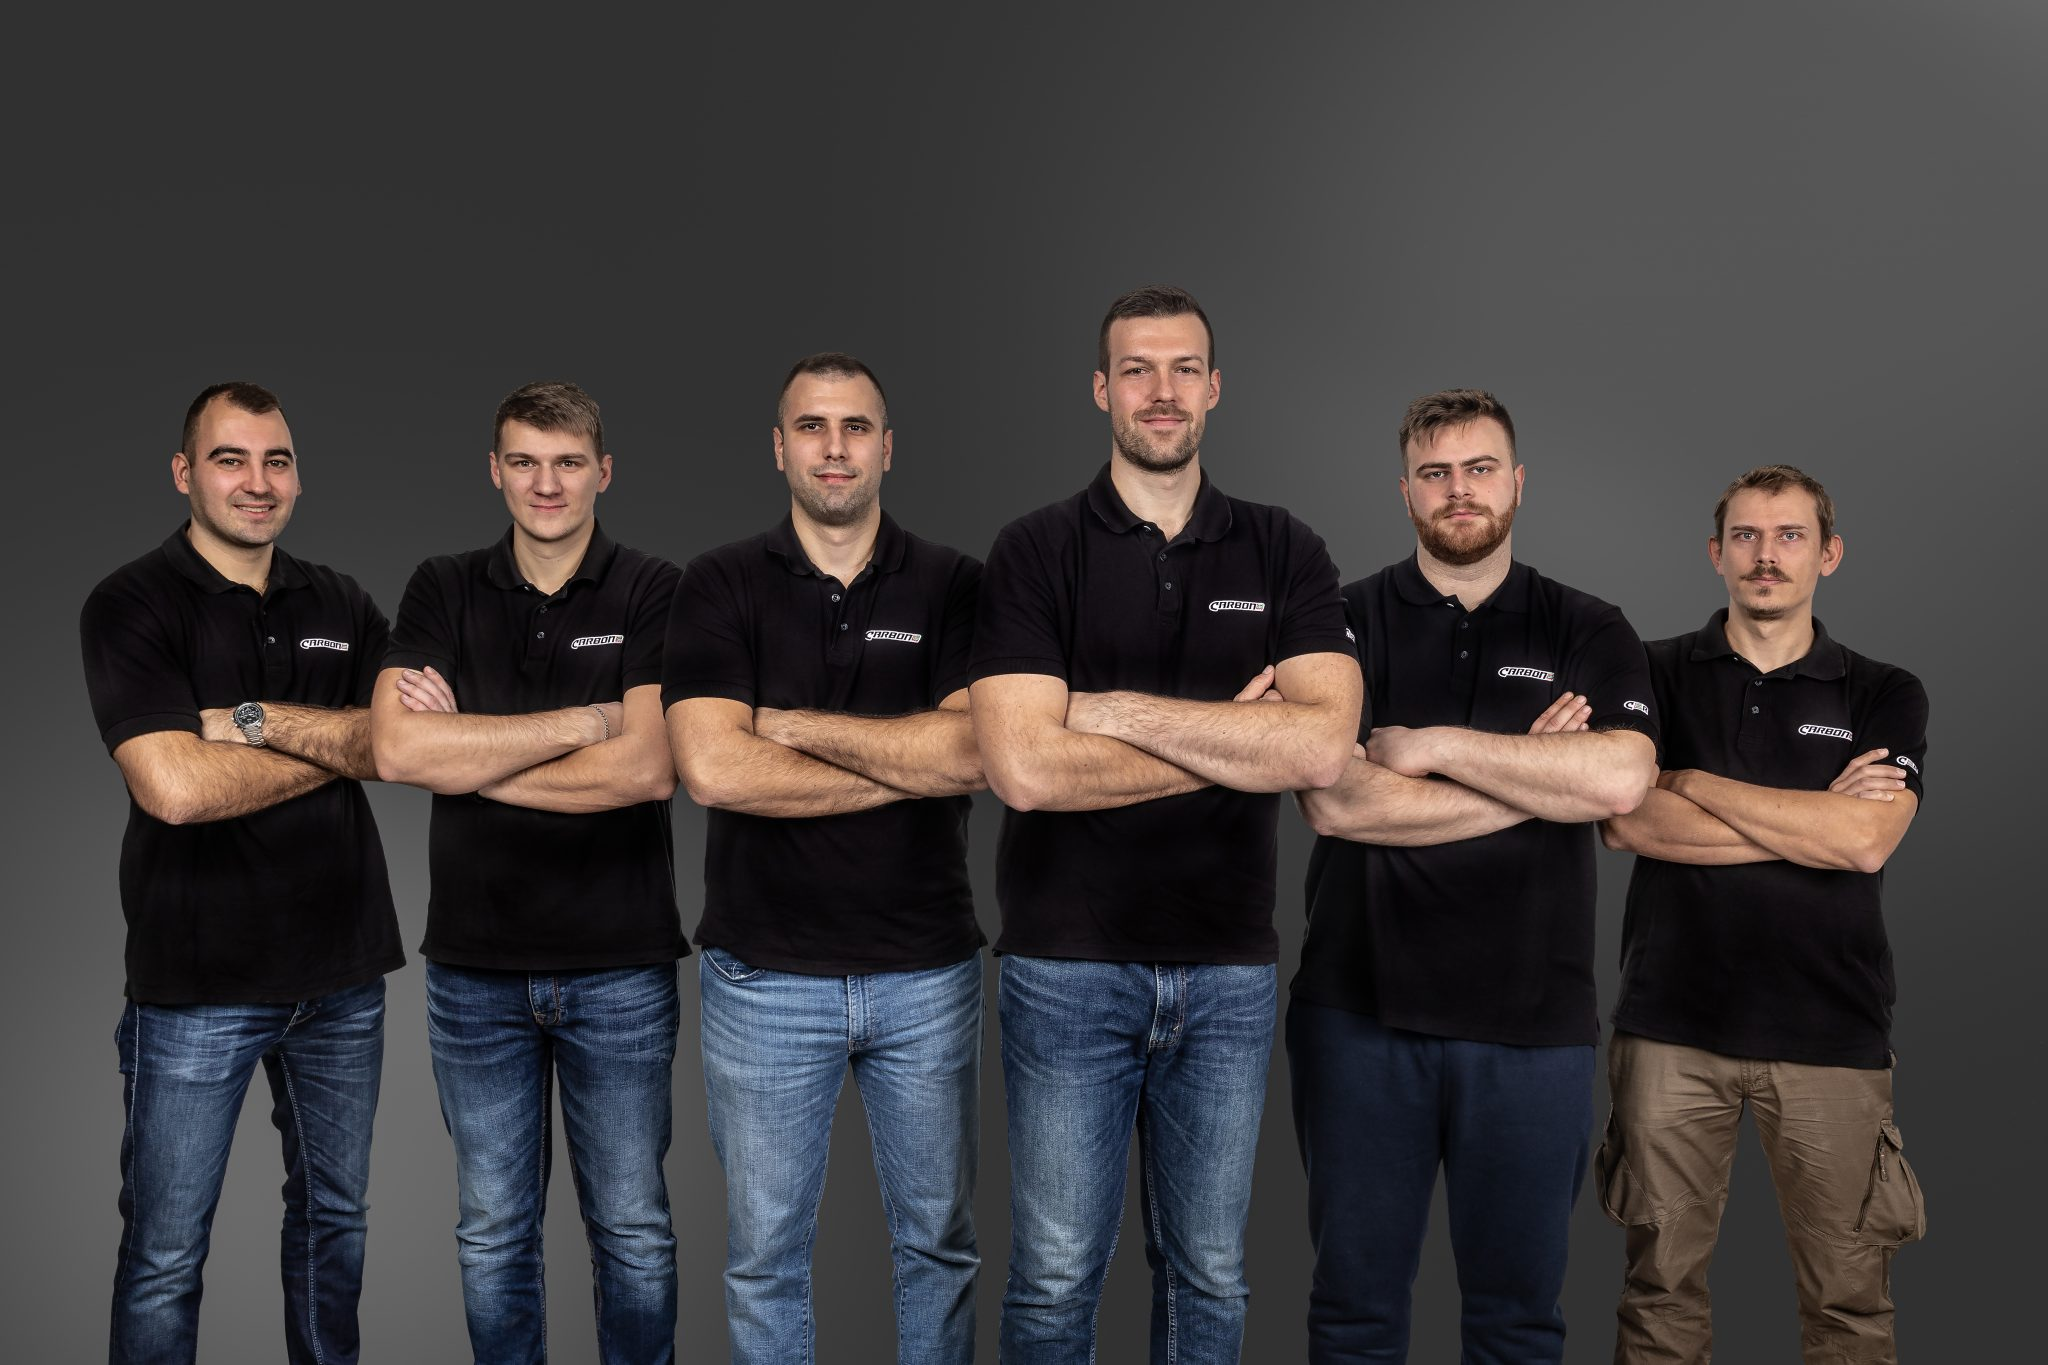 Carbon2race team